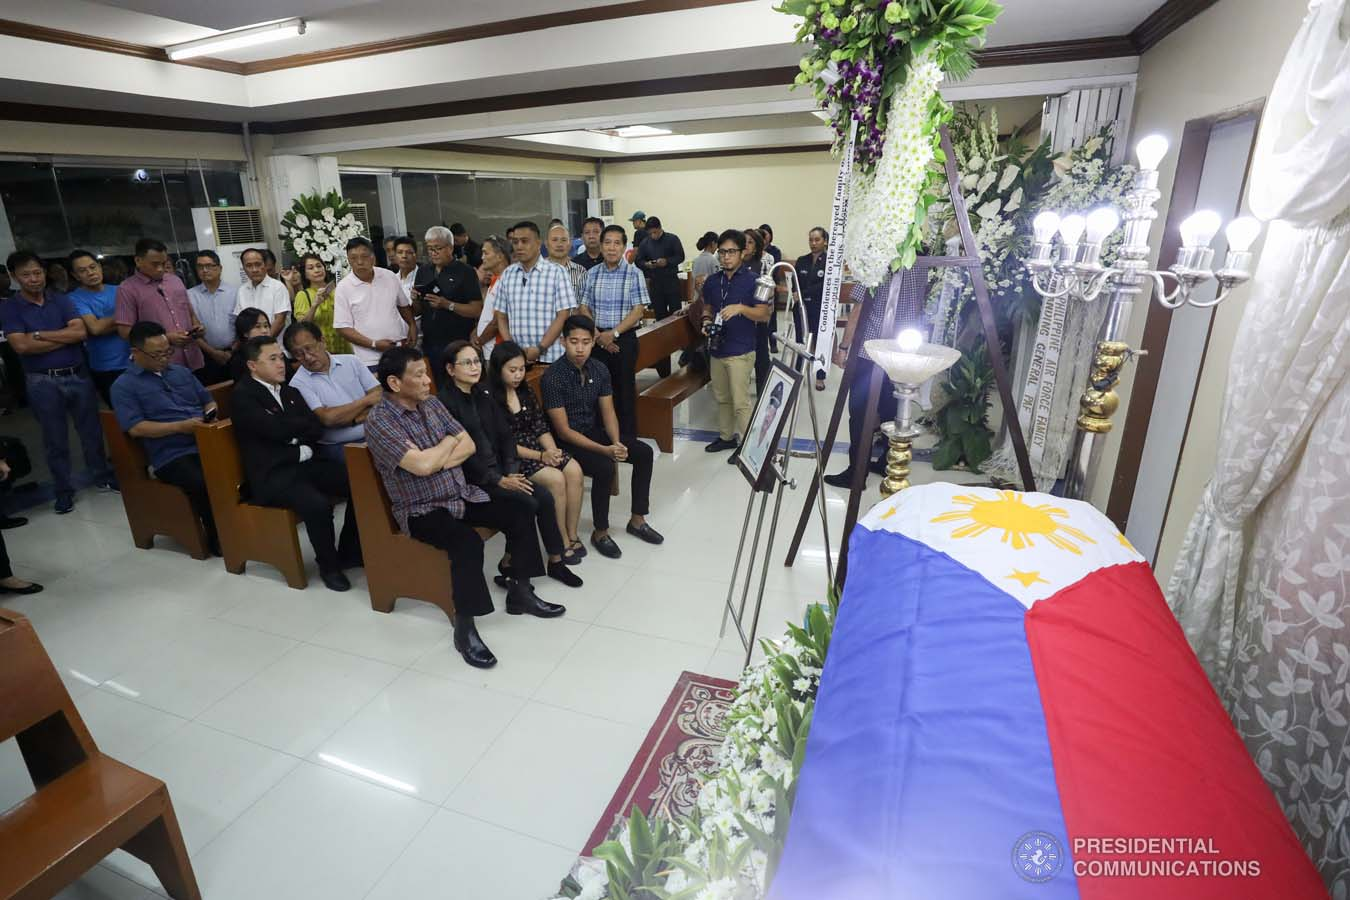 President Rodrigo Roa Duterte pays his last respects to Captain Jesus Hernandez as he visits the wake at the Loyola Memorial Park in Parañaque City on September 5, 2019. Hernandez was the pilot of the Beechcraft King Air 350 with registry number RP-C2296 that crashed in Calamba City, Laguna last September 1. SIMEON CELI JR./PRESIDENTIAL PHOTO